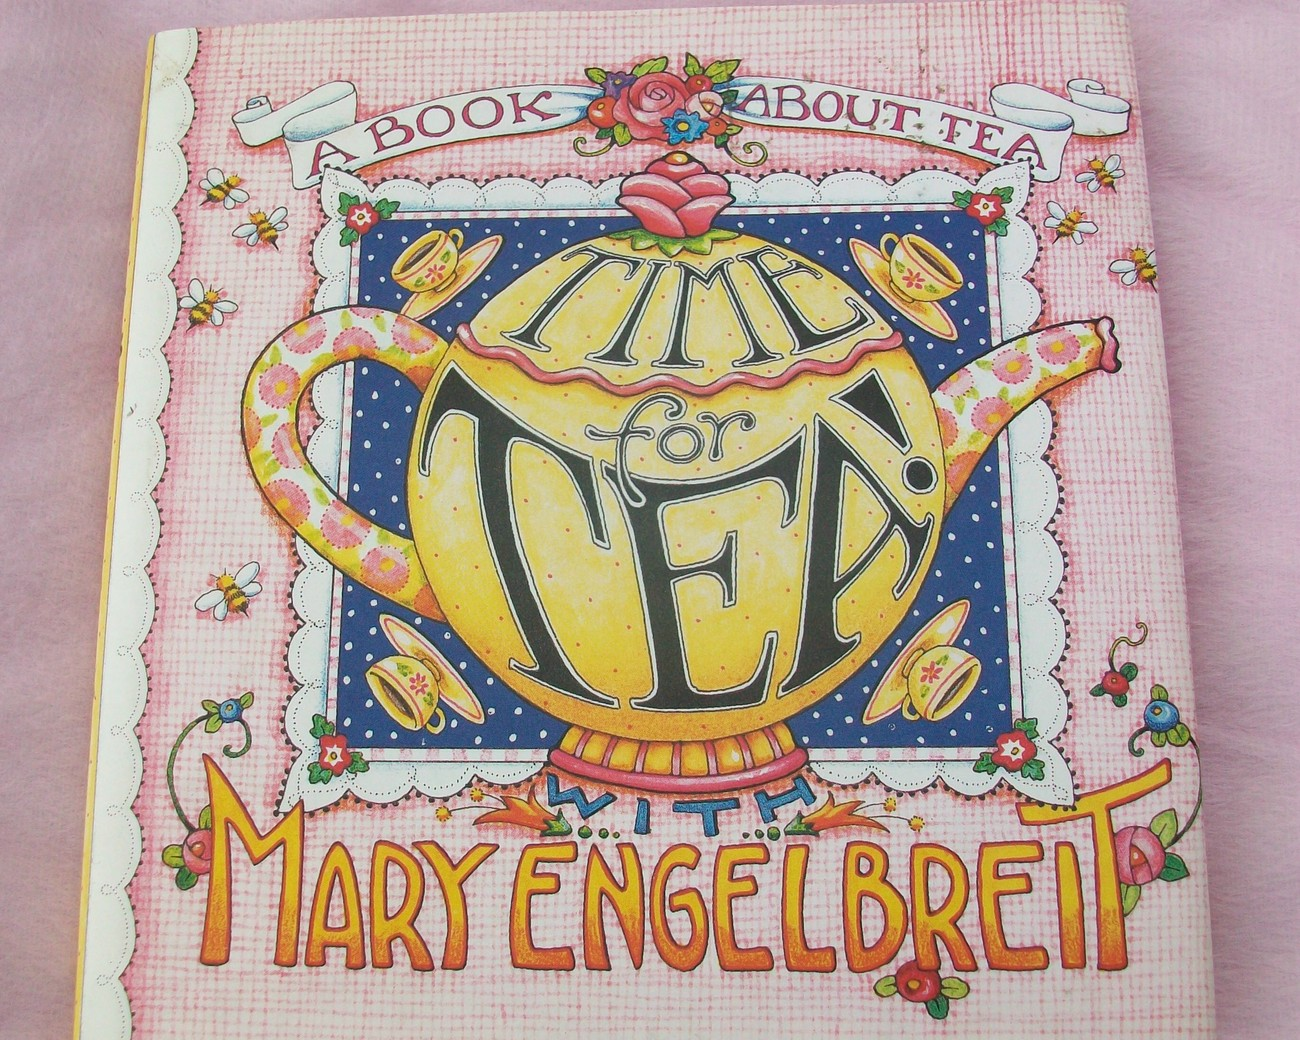 TIME FOR TEA BY MARY ENGELBREIT Collectable Book...